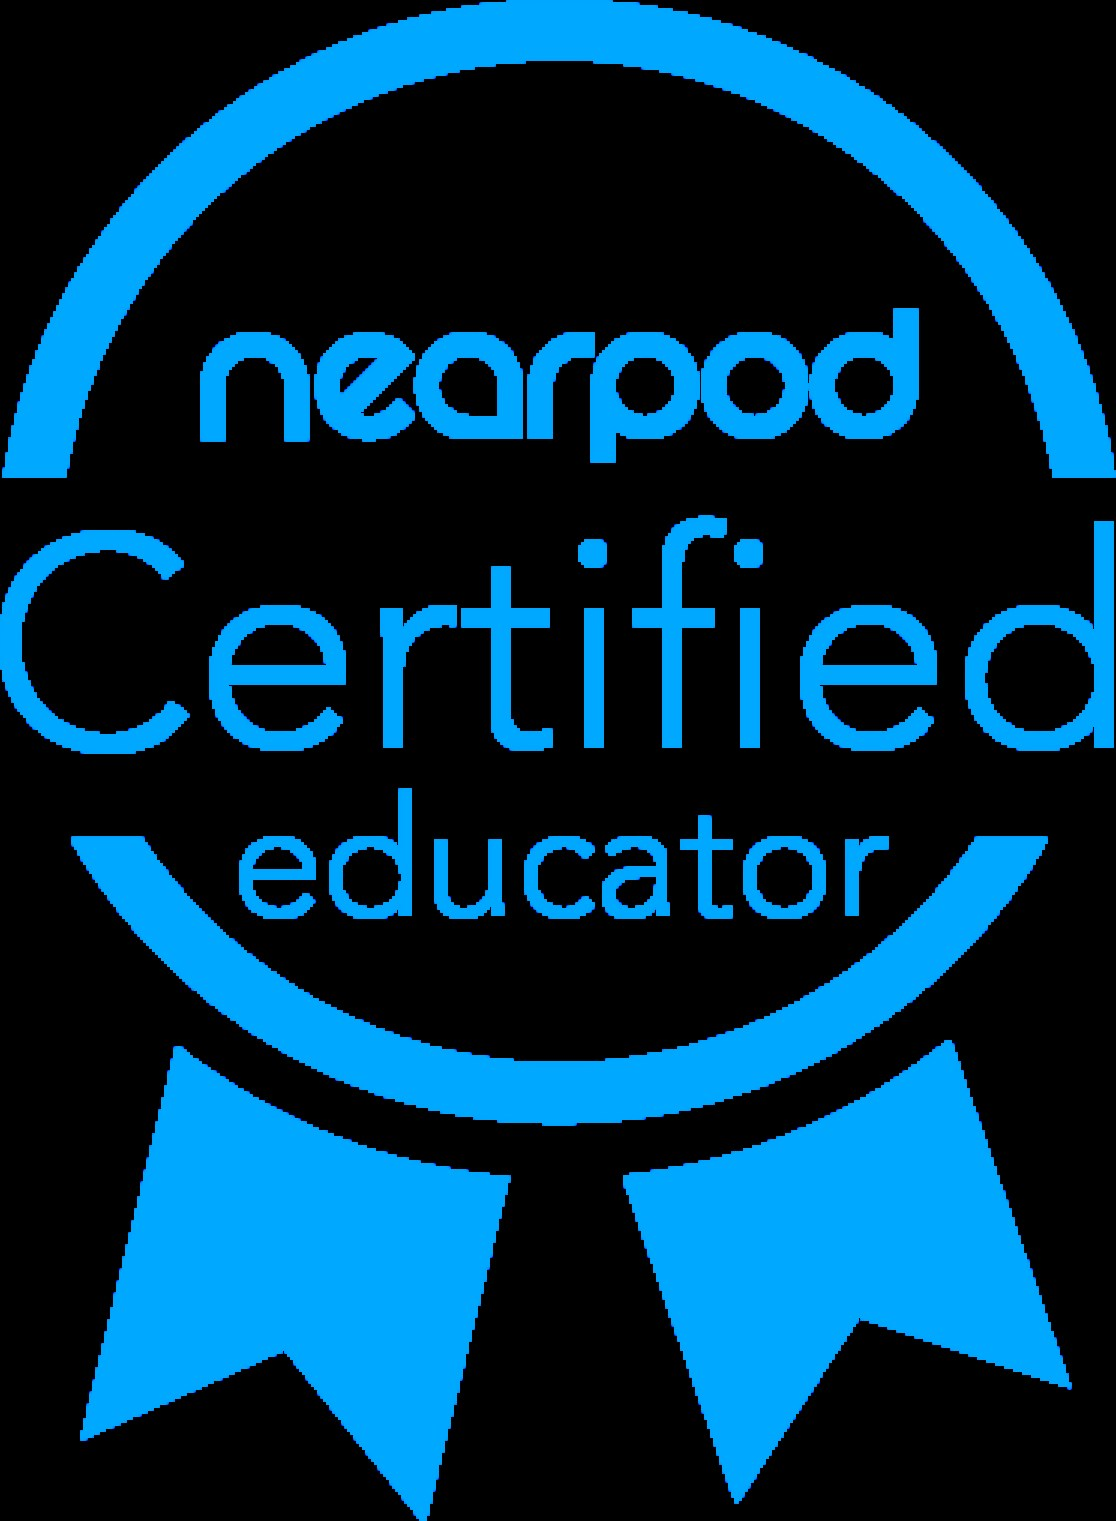 Certified Nearpod Educator